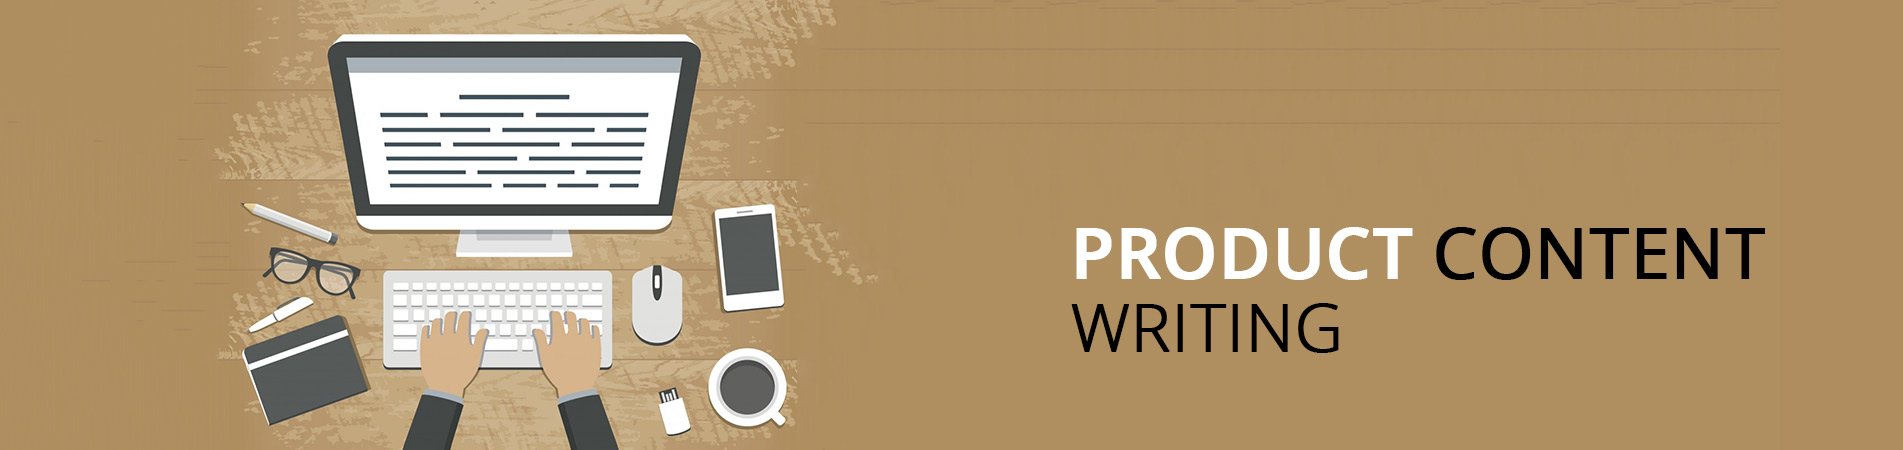 Product Content Writing Services Bangalore